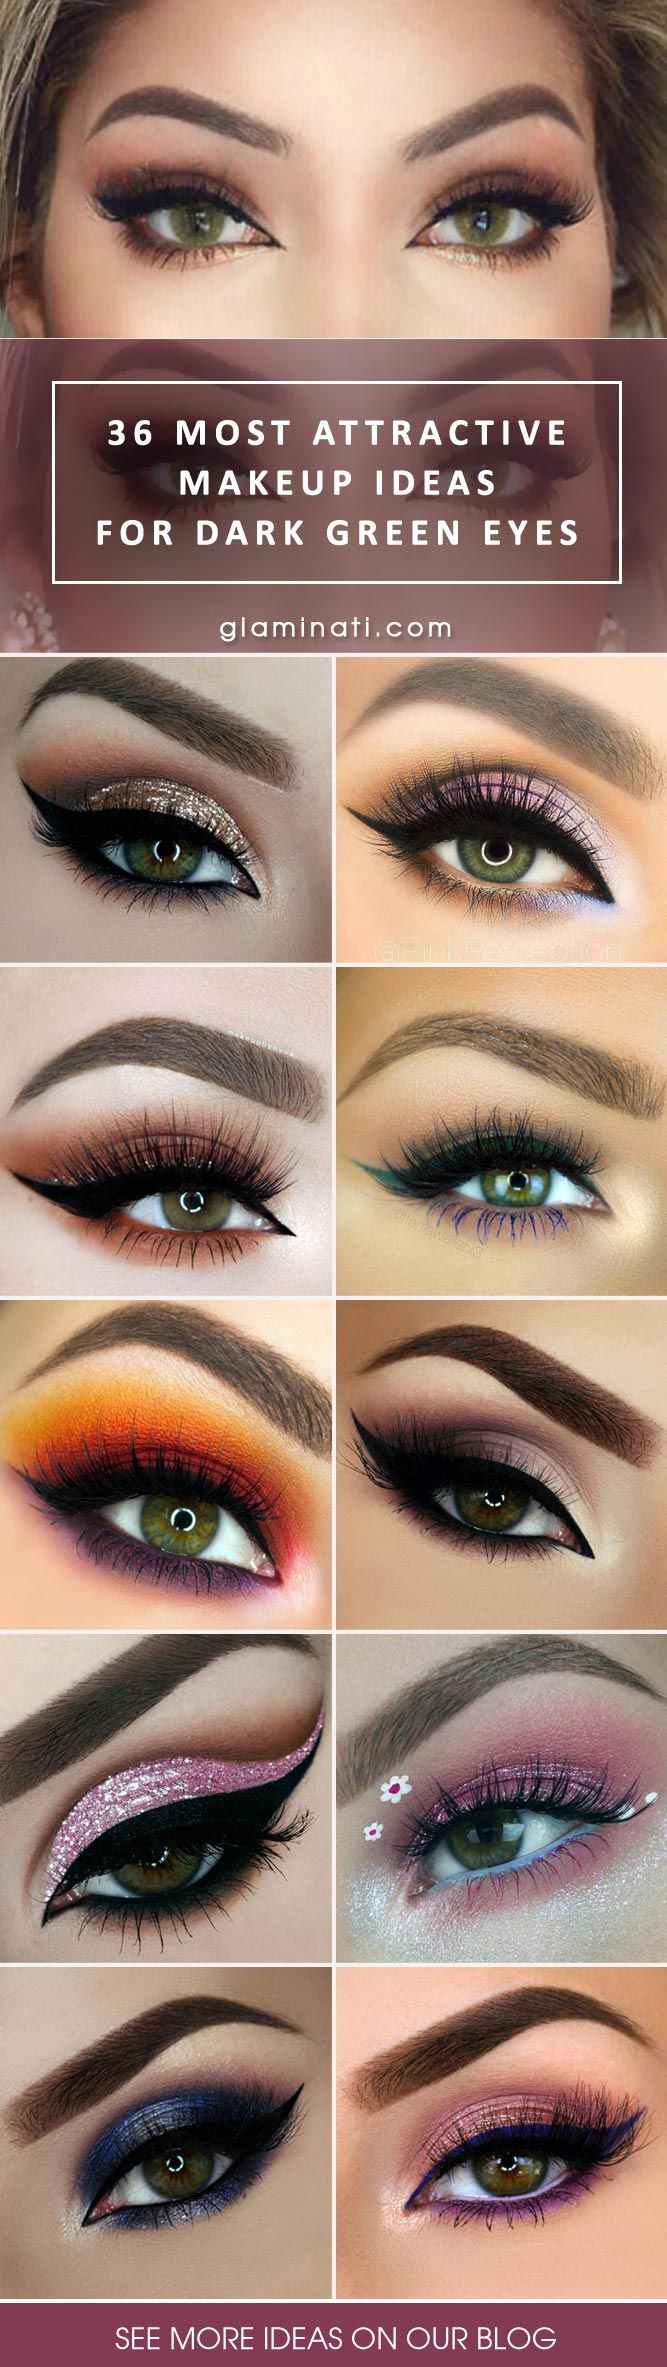 42 most attractive makeup ideas for dark green eyes | eye